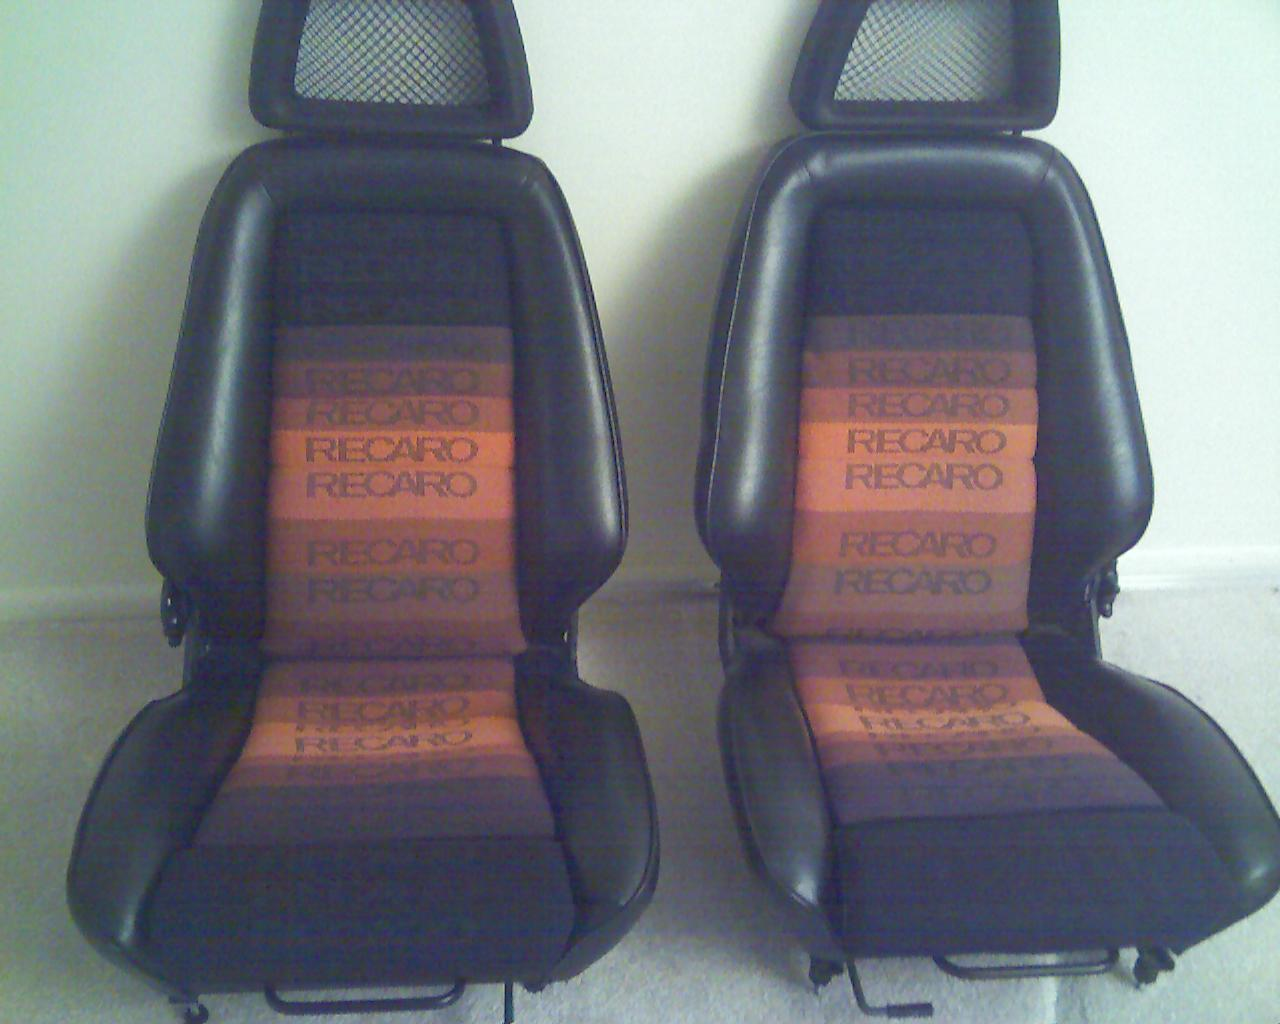 Sold Recaro Seats For Sale Parts For Sale Bmw 2002 Faq